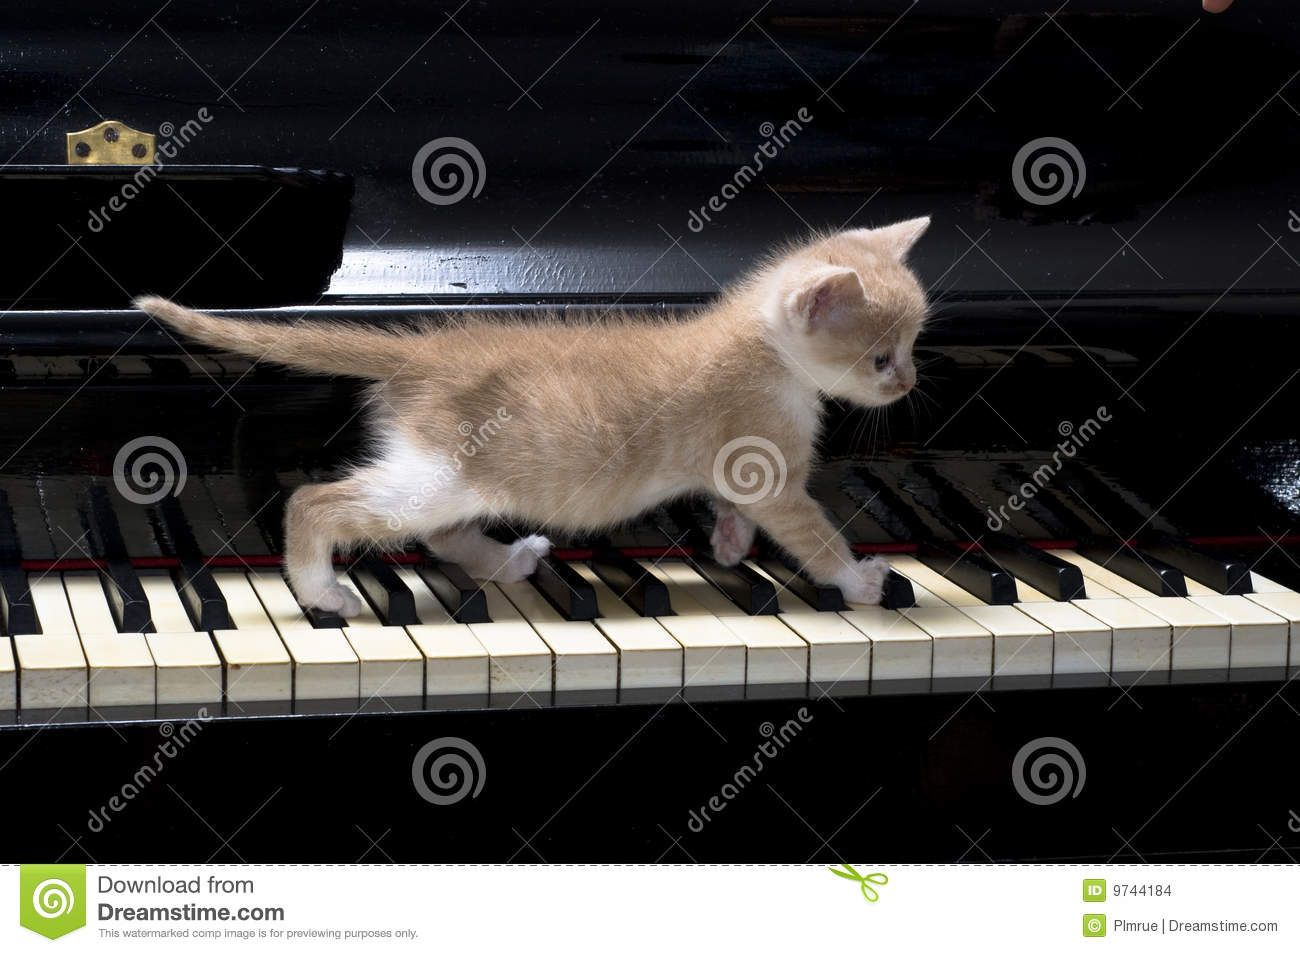 3d Abstract Rainbow Wallpaper Piano Cat Stock Images Image 9744184